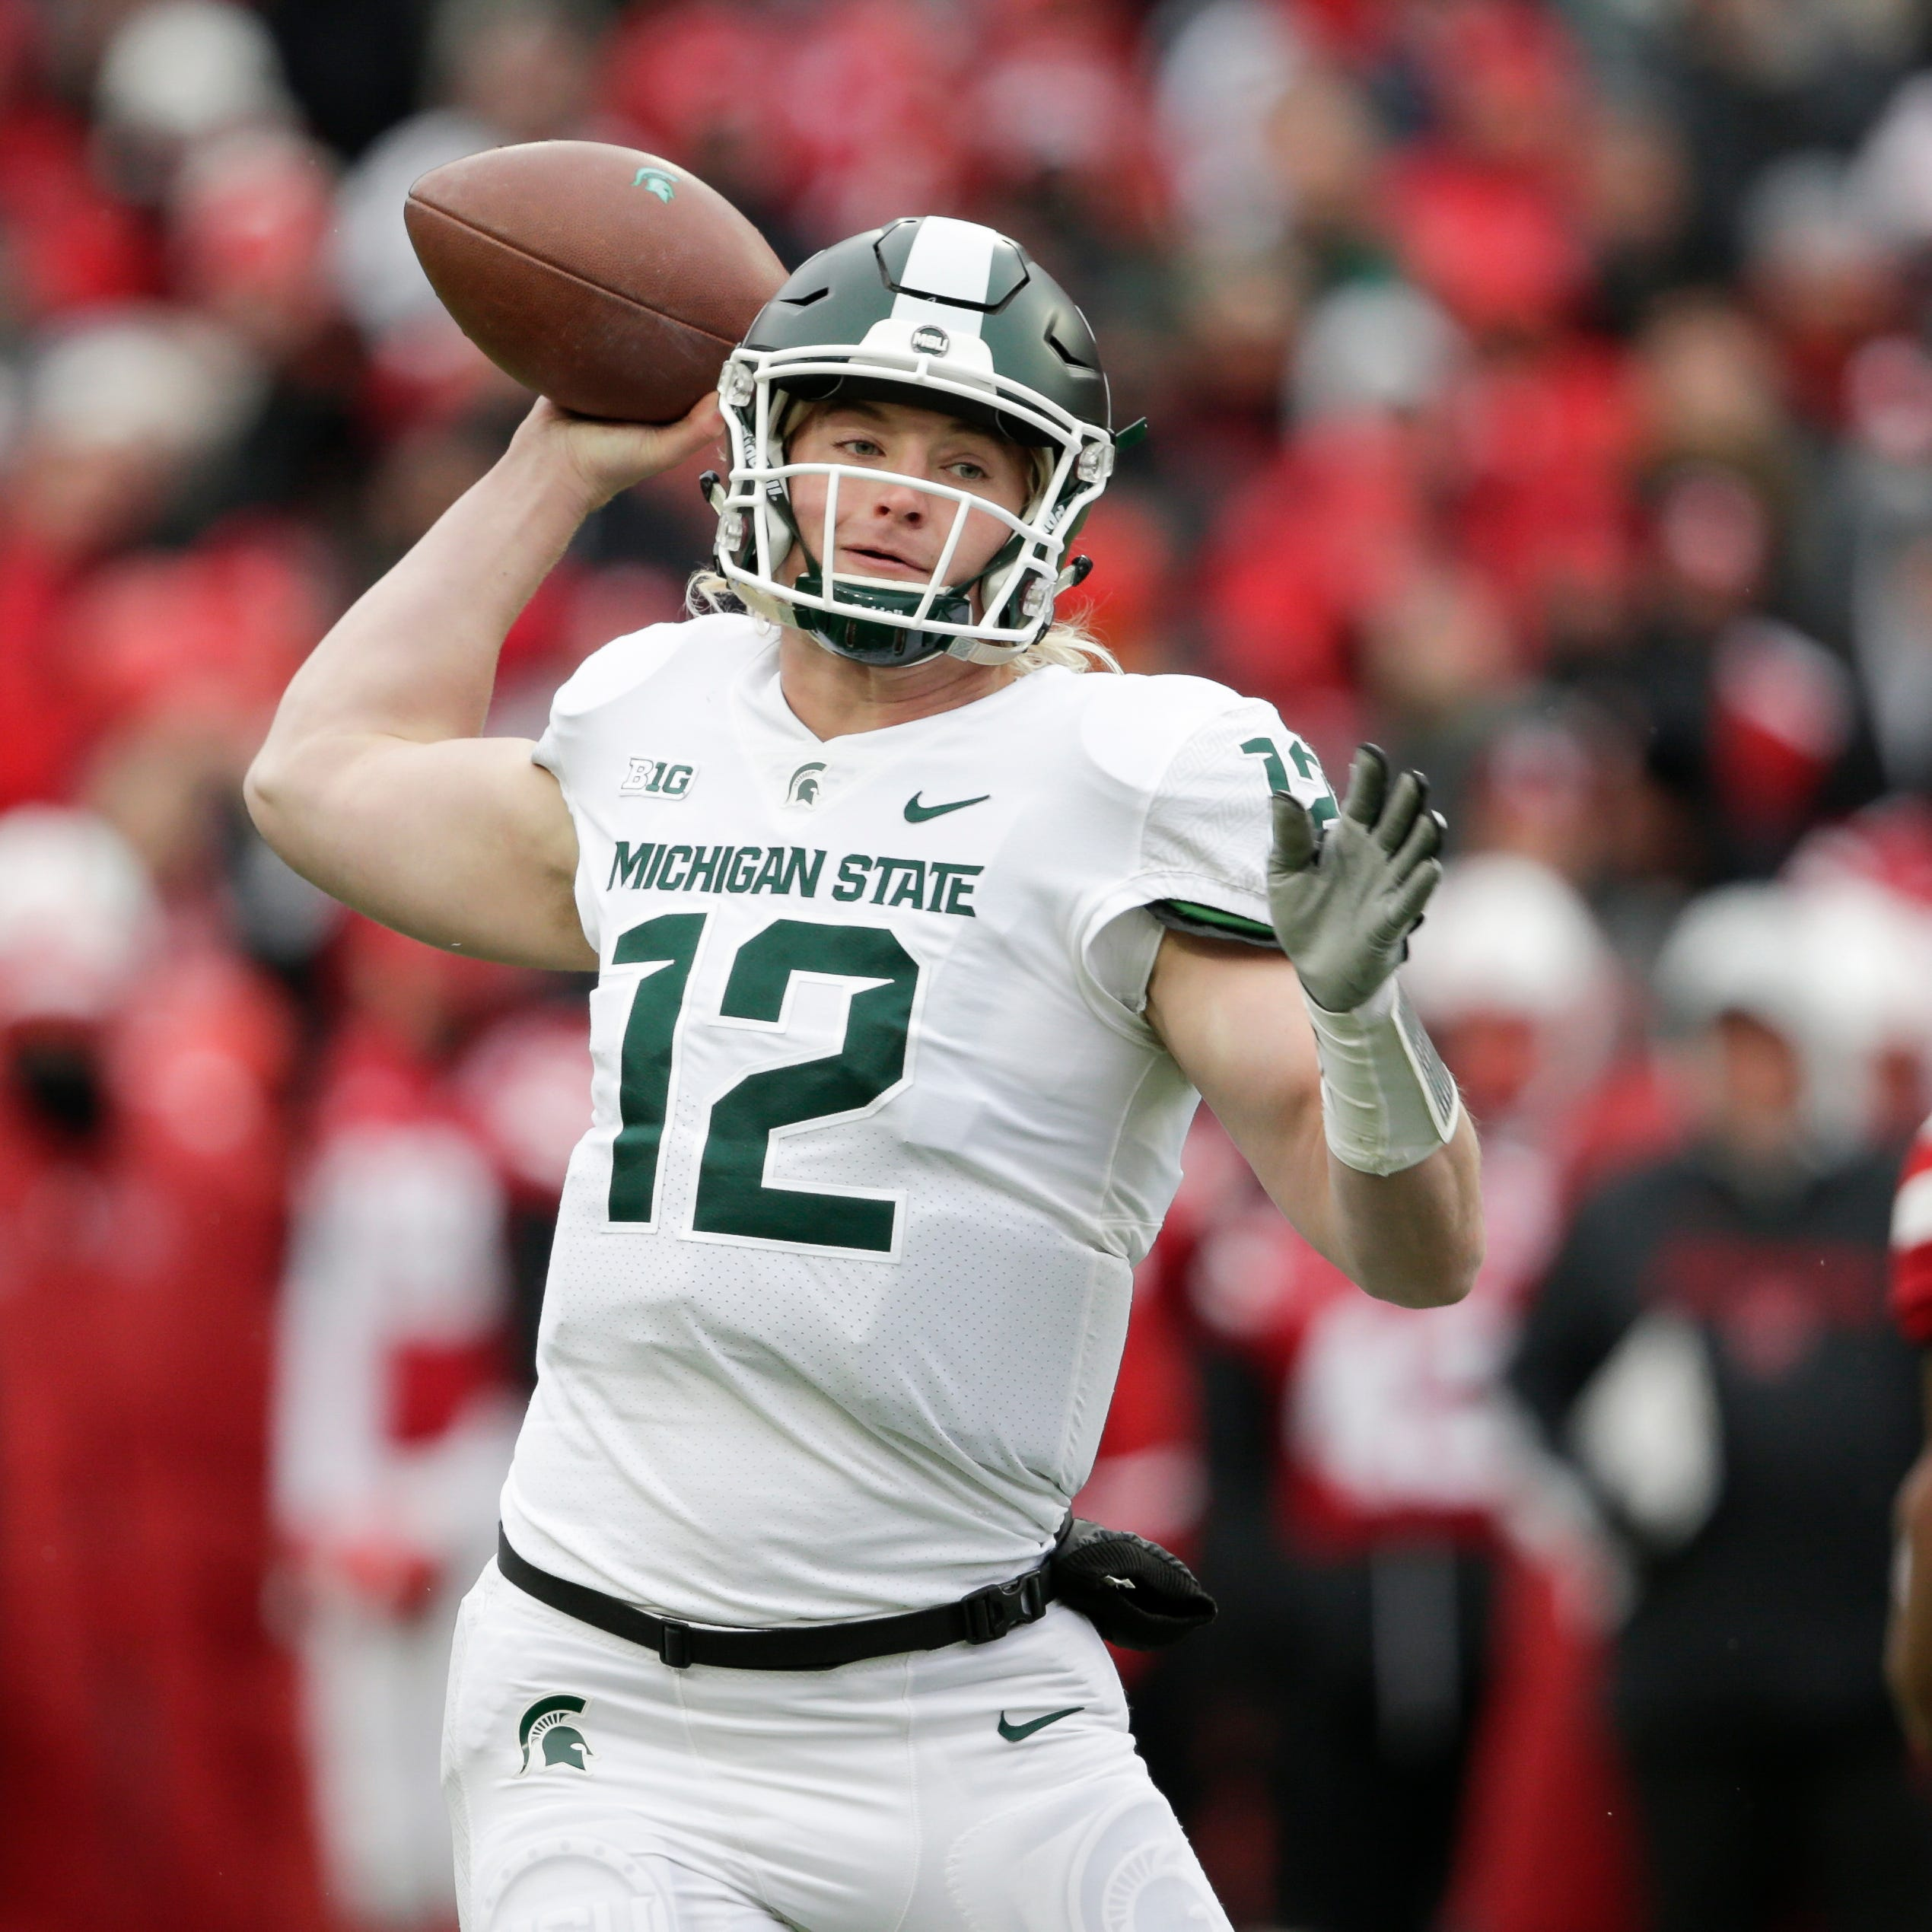 MSU's Lombardi refuses to point finger over dropped passes